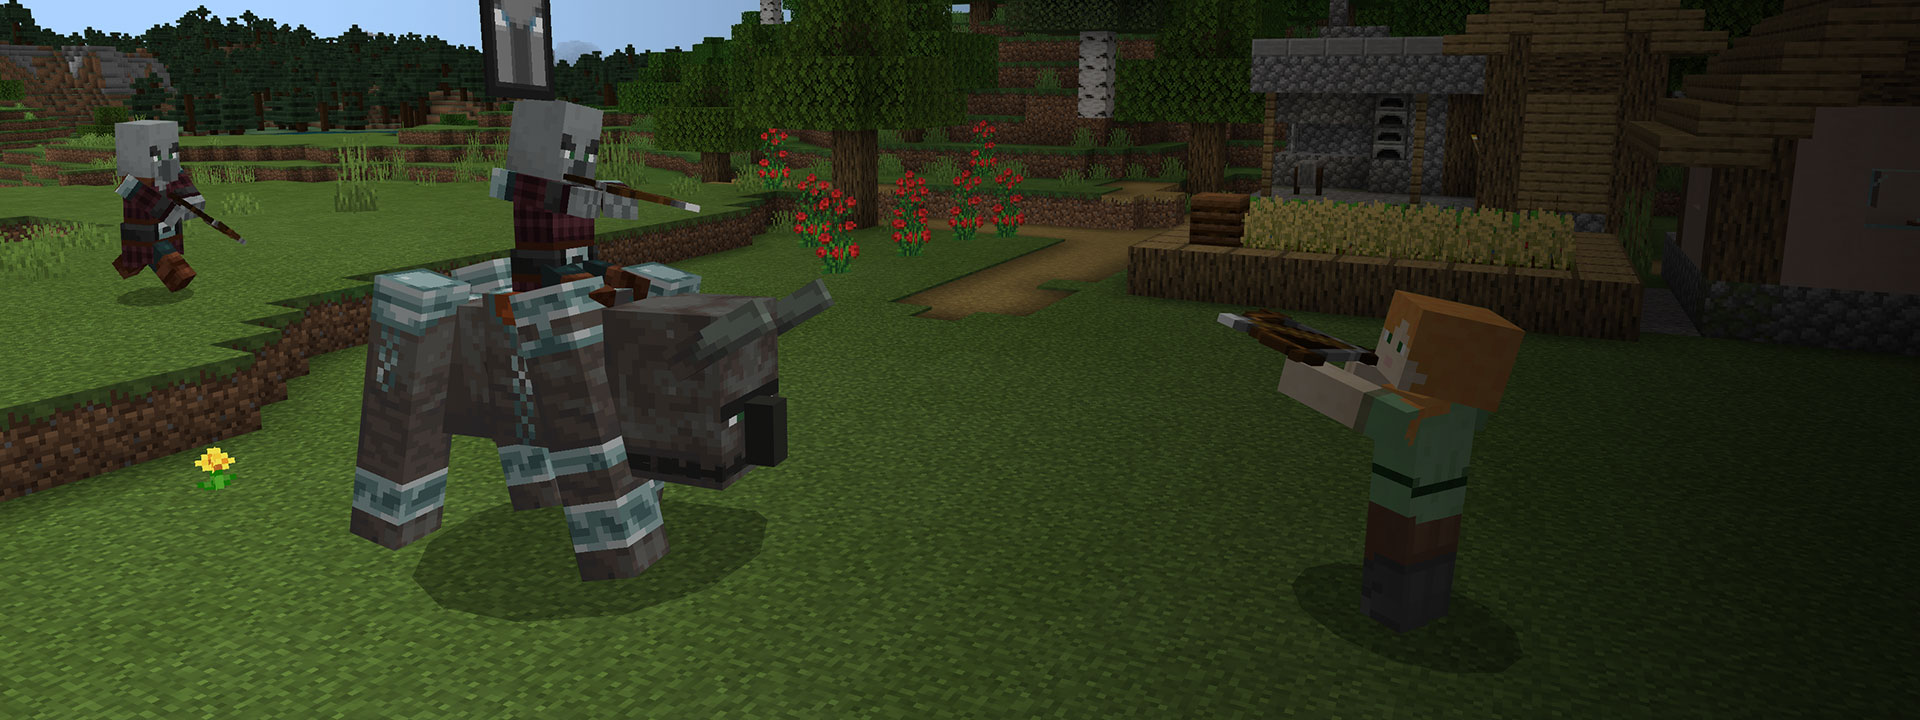 Two Creepers, one riding a bull, attacking a Blockhead with crossbows